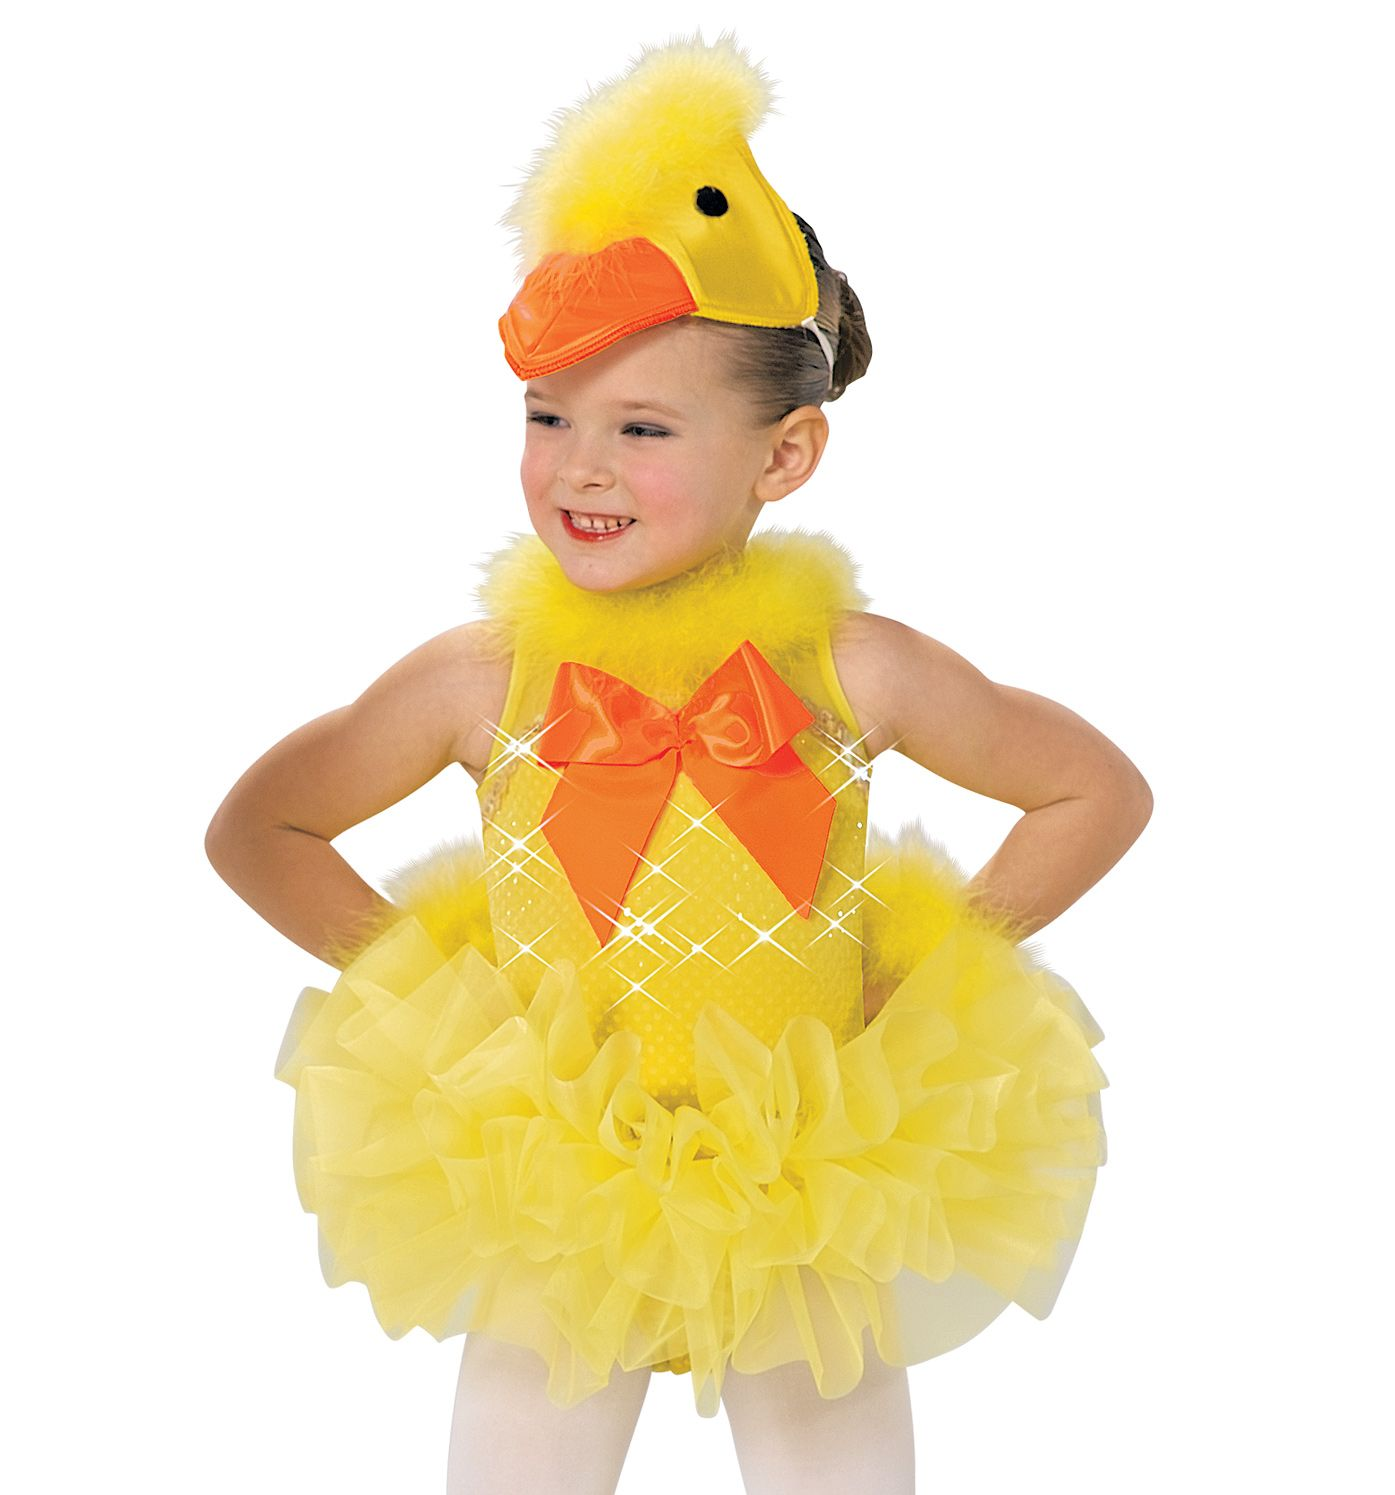 yellow duck costumes for toddlers | ... theatricals costumes 172 shop by color shop by fabric shop by product  sc 1 st  Pinterest & yellow duck costumes for toddlers | ... theatricals costumes 172 ...